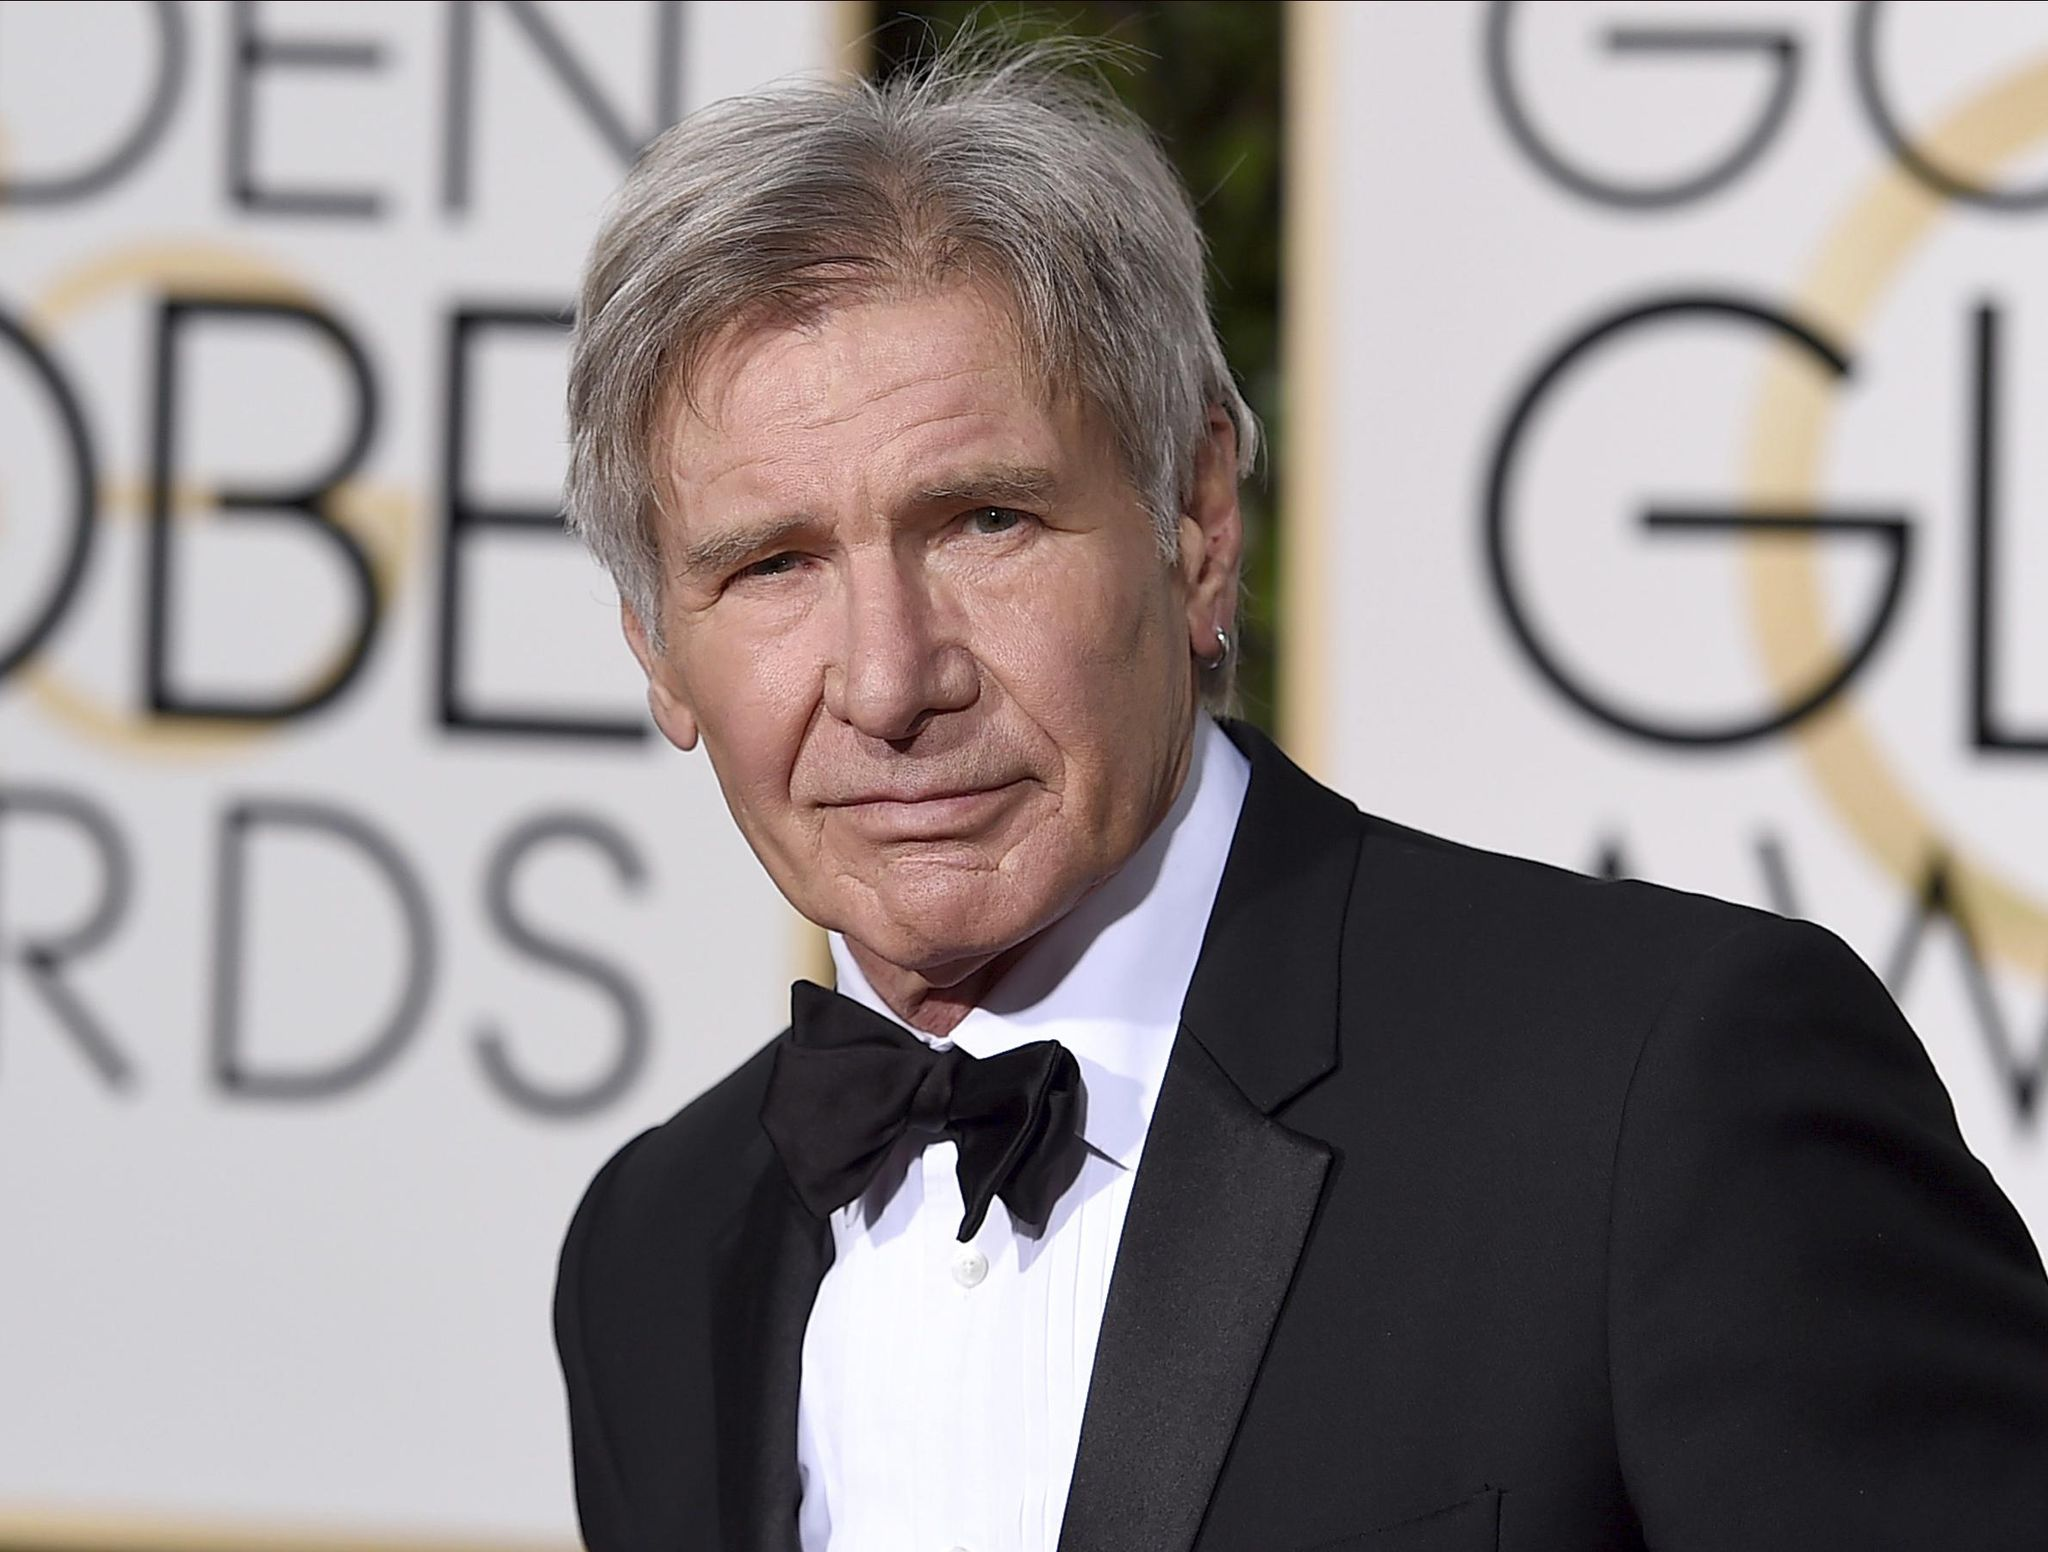 Harrison Ford: 'Stop giving power' to climate deniers